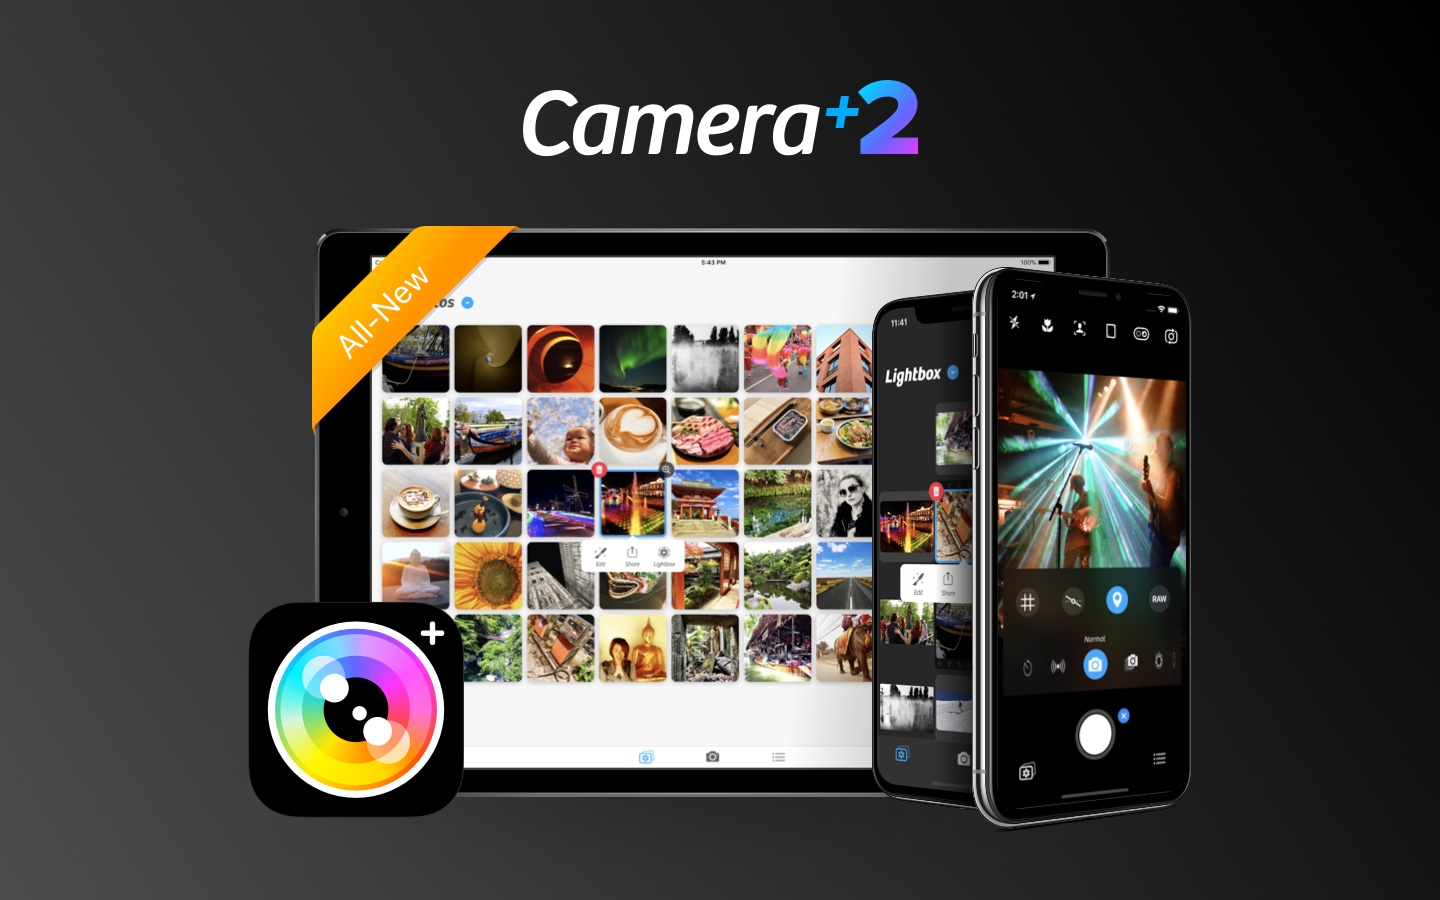 Top 5 Best Camera Apps For The iPhone. 2